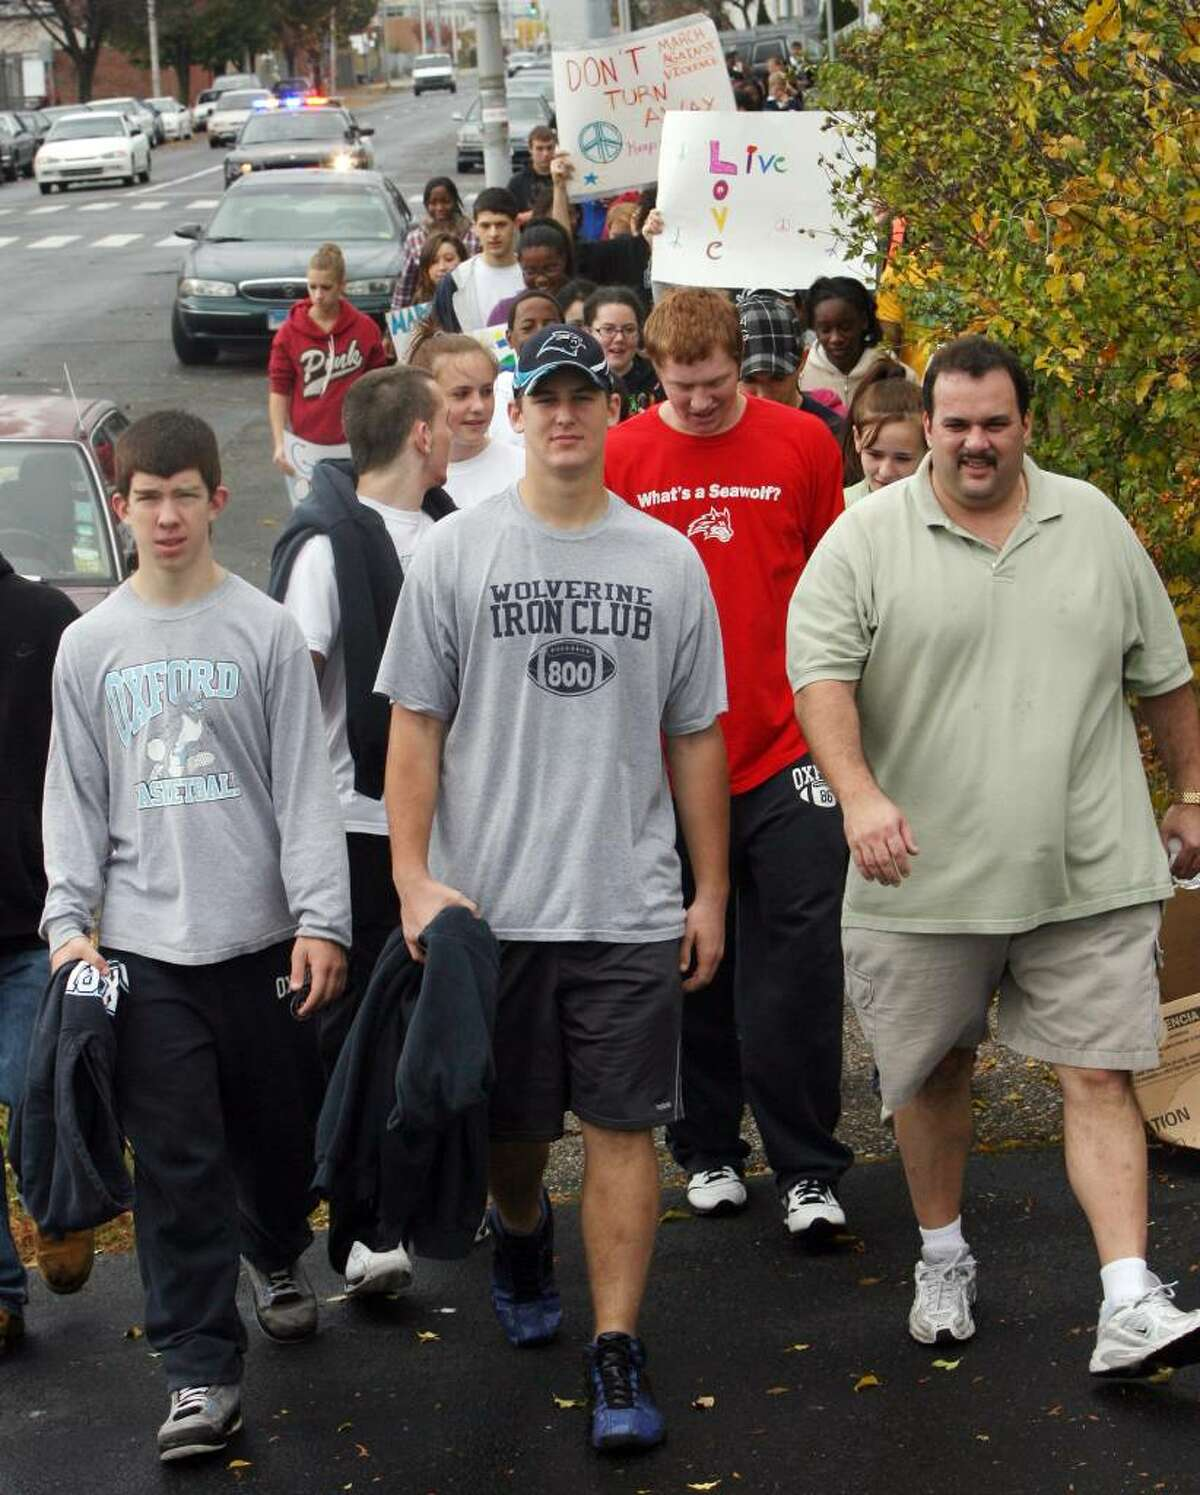 Oxford High School teacher and former Bassick teacher Jeff Giovacchino, right, walks with students in memory of his former Bassick High School student , Ta Von Duharte, who was killed in 2006 in Bridgeport. Students from Bassick, Oxford and members of Build On, a worldwide community service club, joined in a March Against Violence on Saturday, Oct.31, 2009. The walk was a 2.5 mile loop around Bassick High school and included Hancock street, where Duharte was killed.